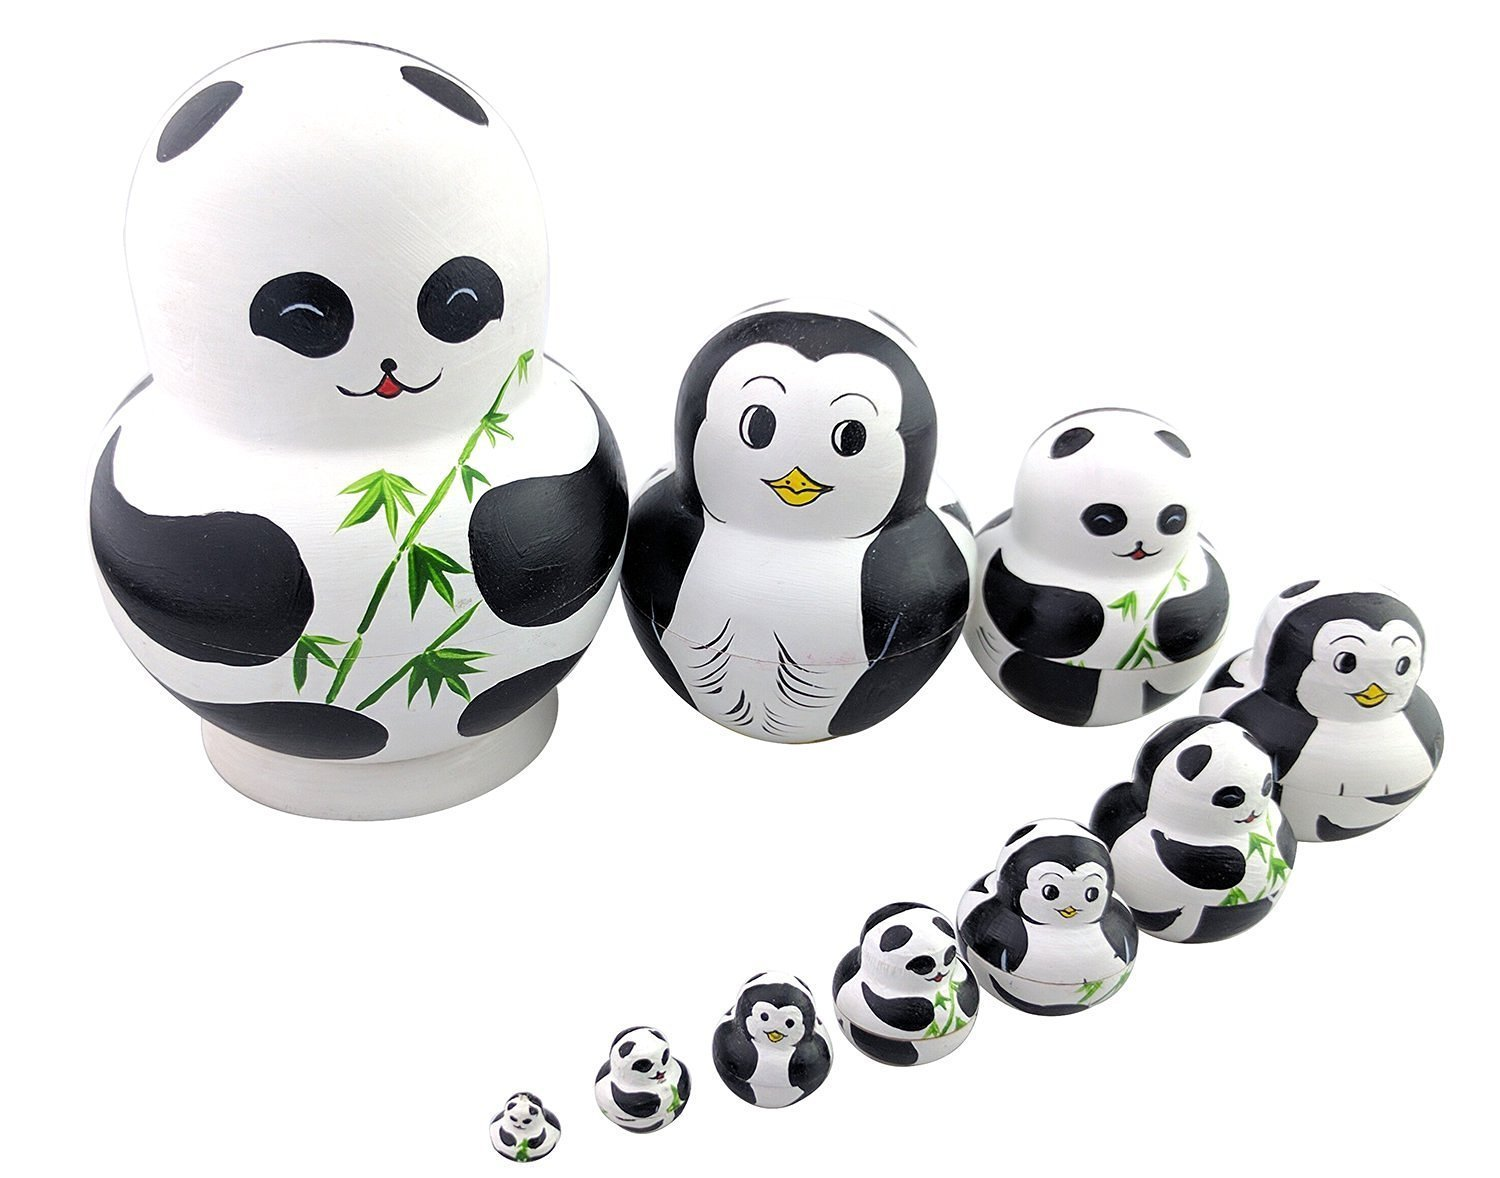 Set of 10 Panda & Penguin Double-faced Pattern Chubby Stacking Toy Russian Doll Handmade Wooden Toy for Kids Nursery Room Decor Winterworm